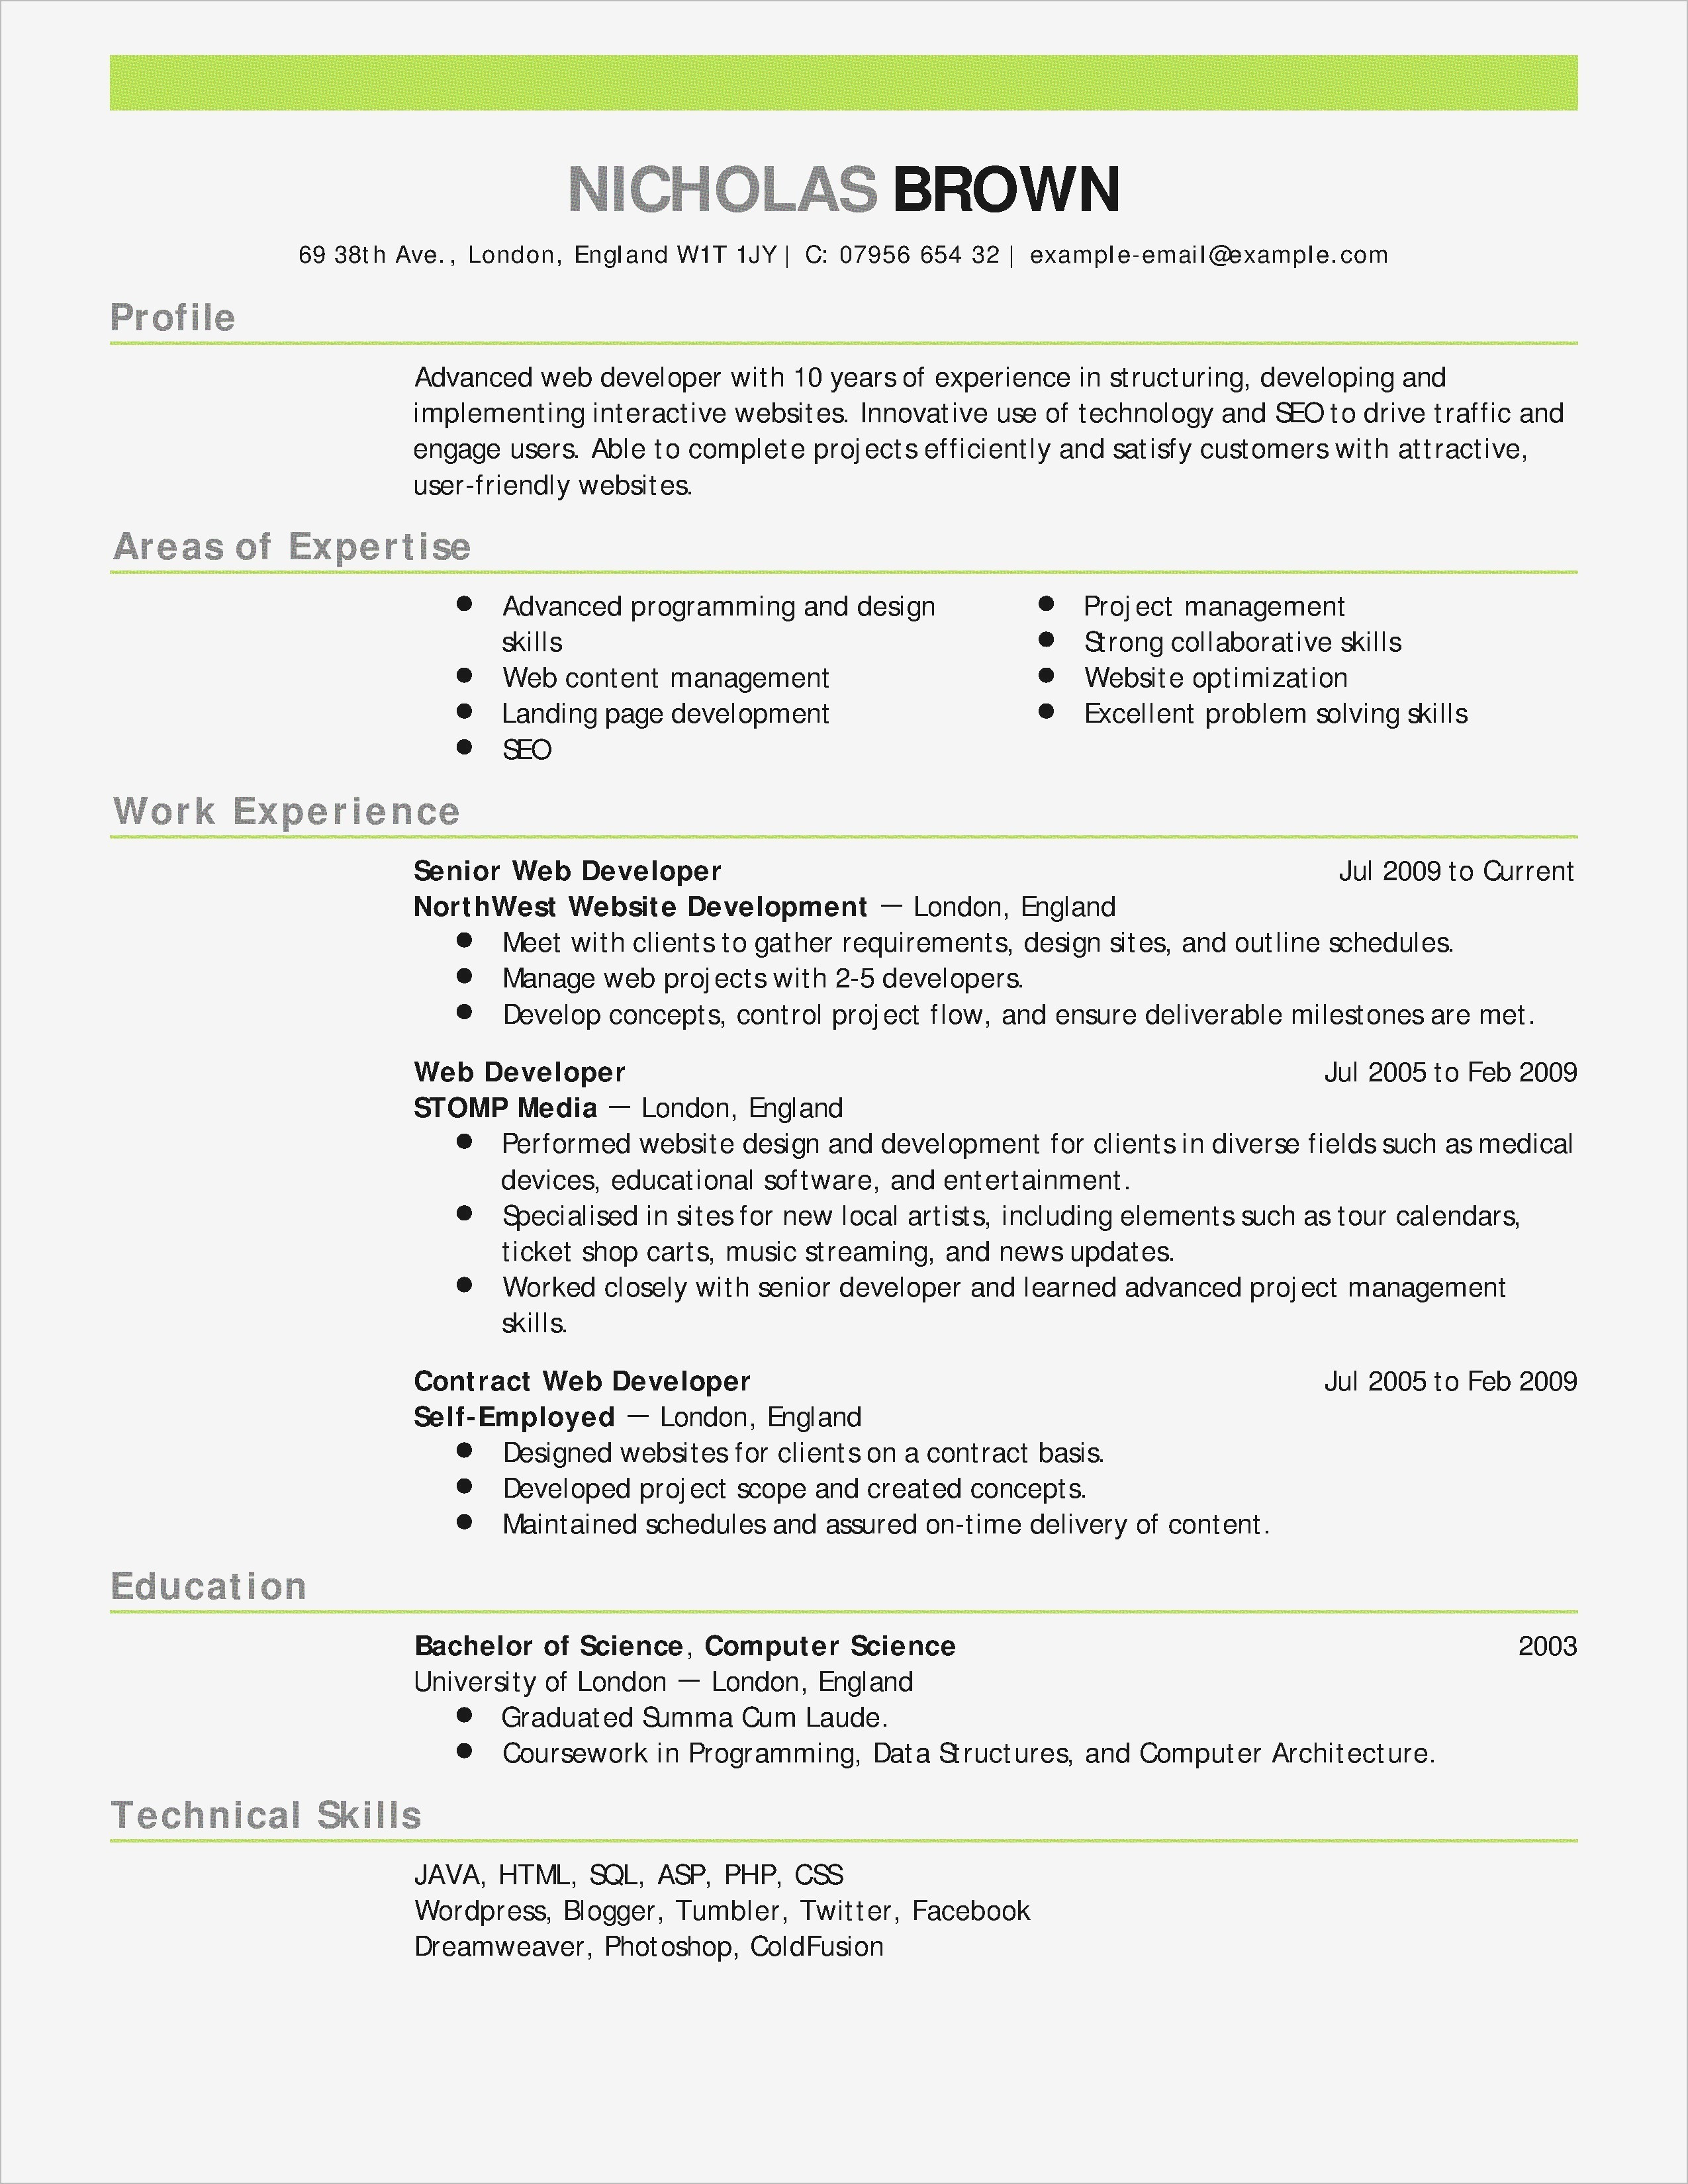 Resume Word Templates - New Template for Resume Word